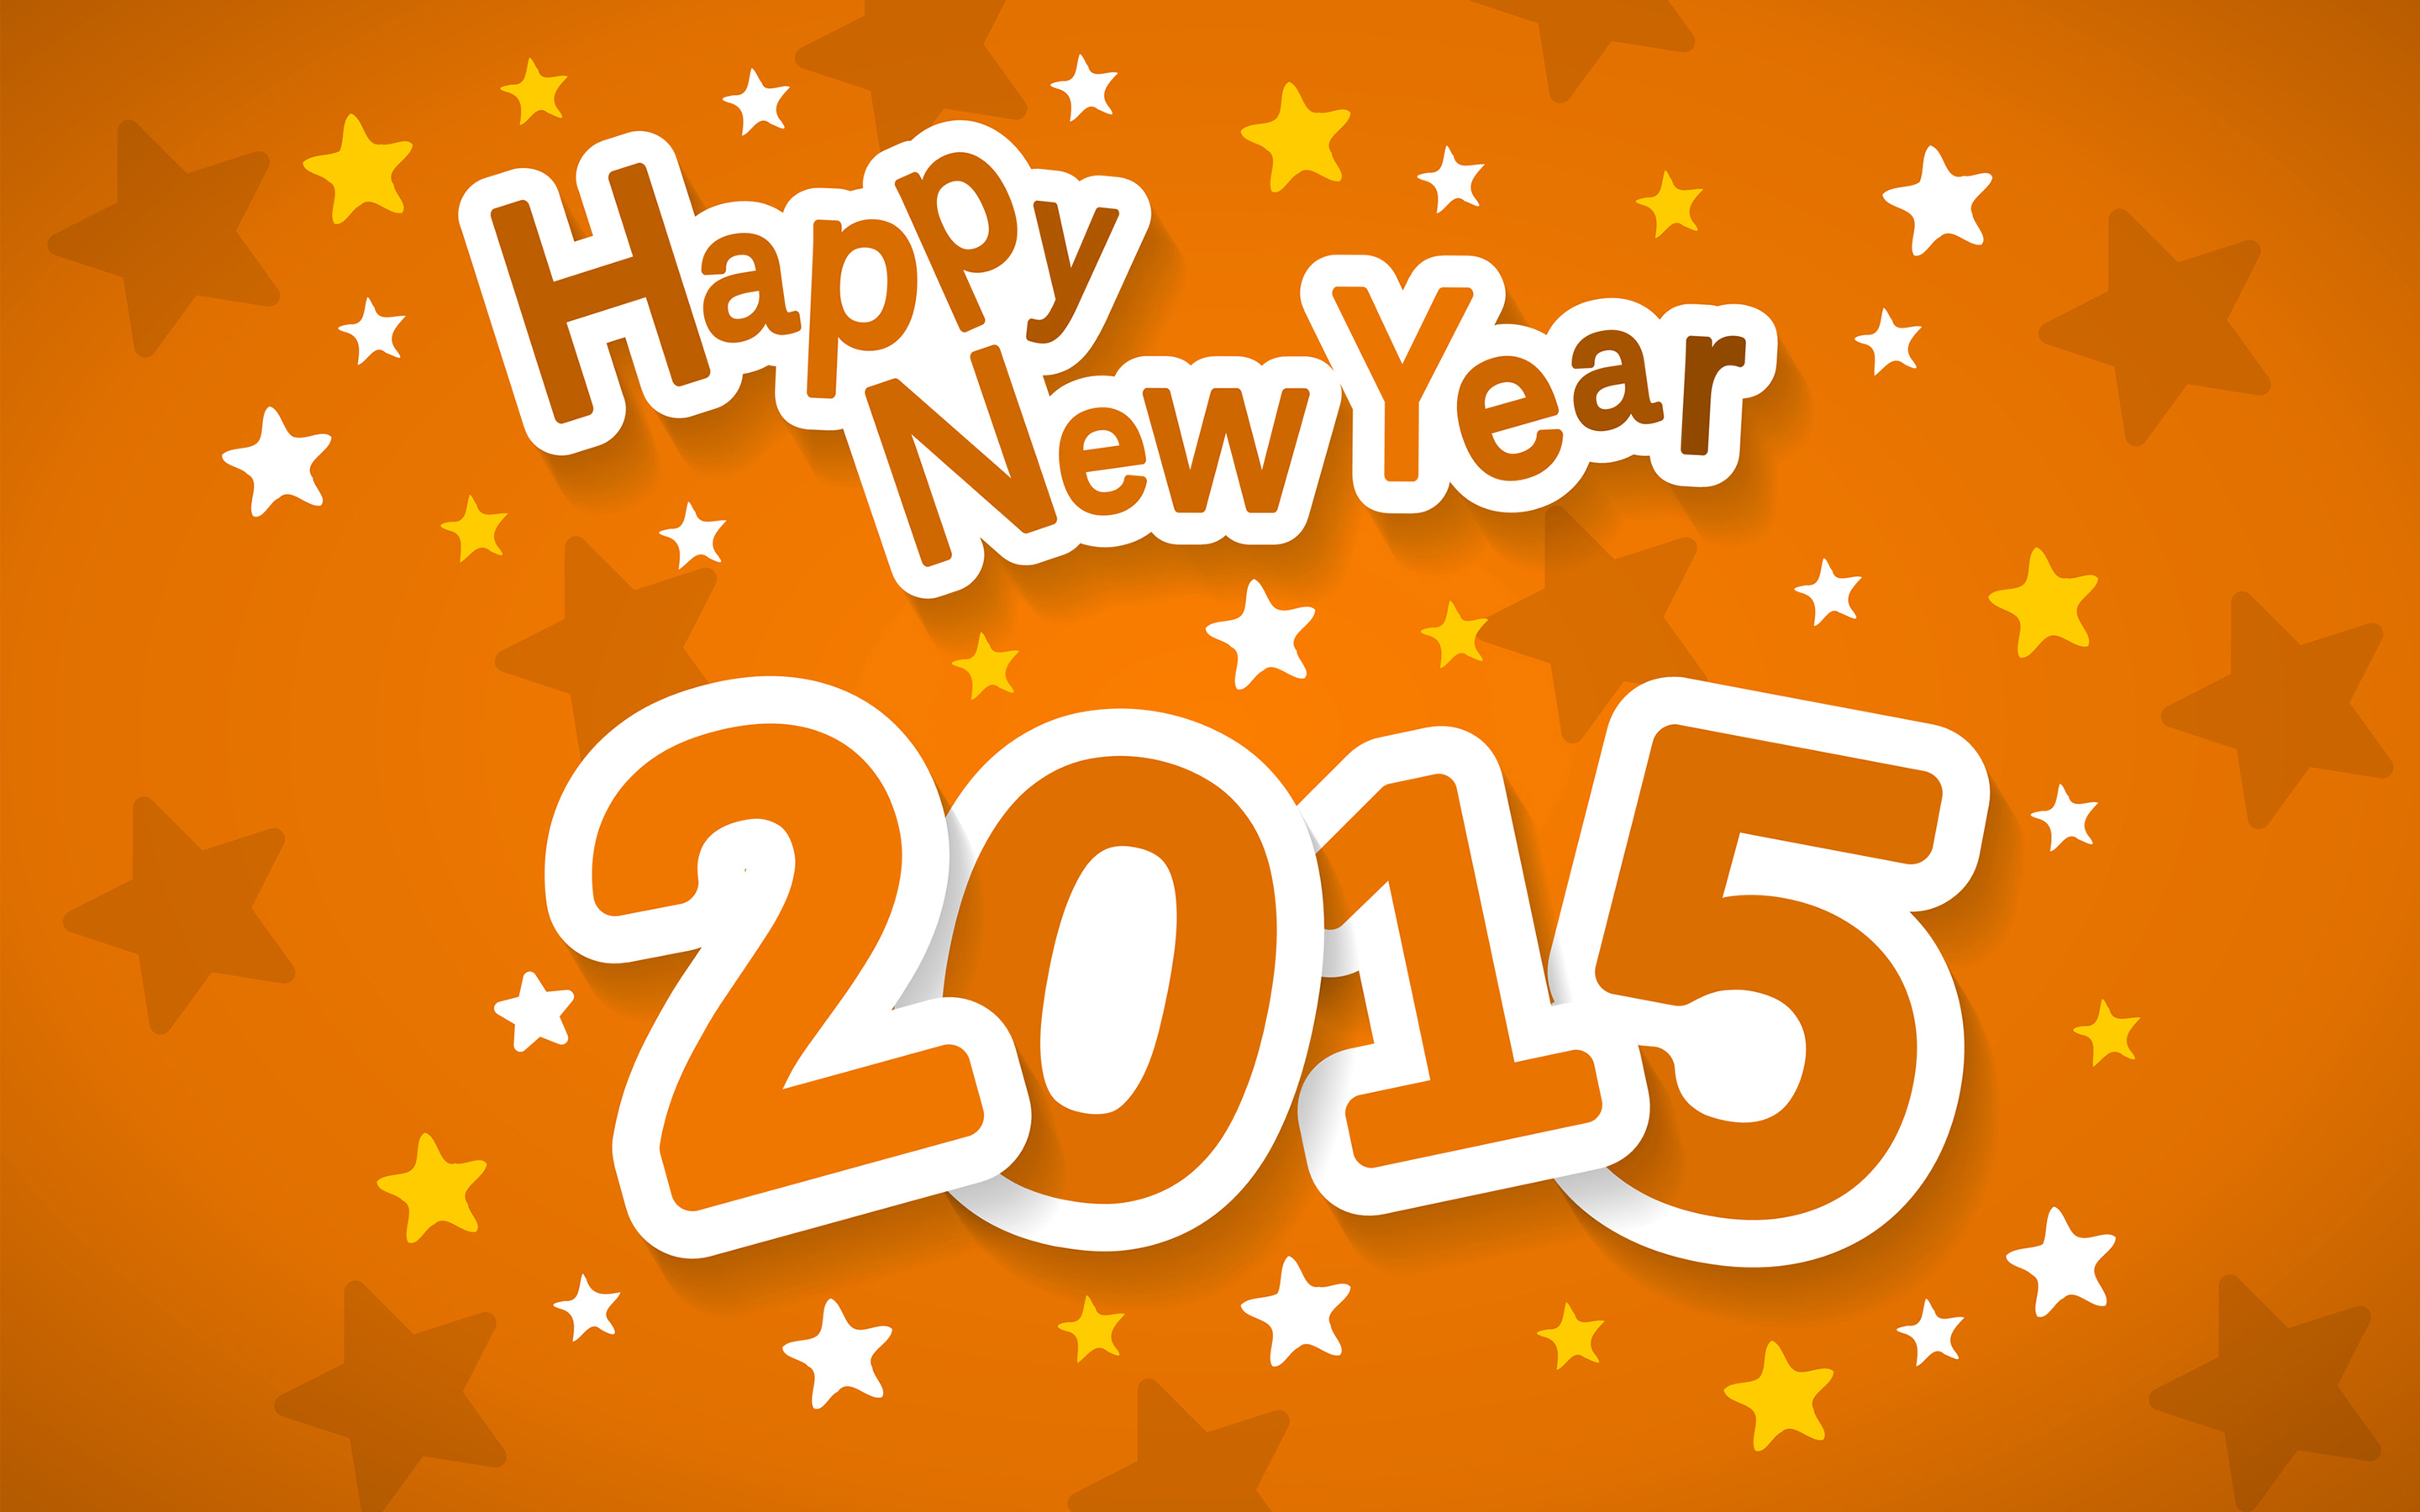 Happy New Year 2015 4137915 2880x1800 All For Desktop 2880x1800